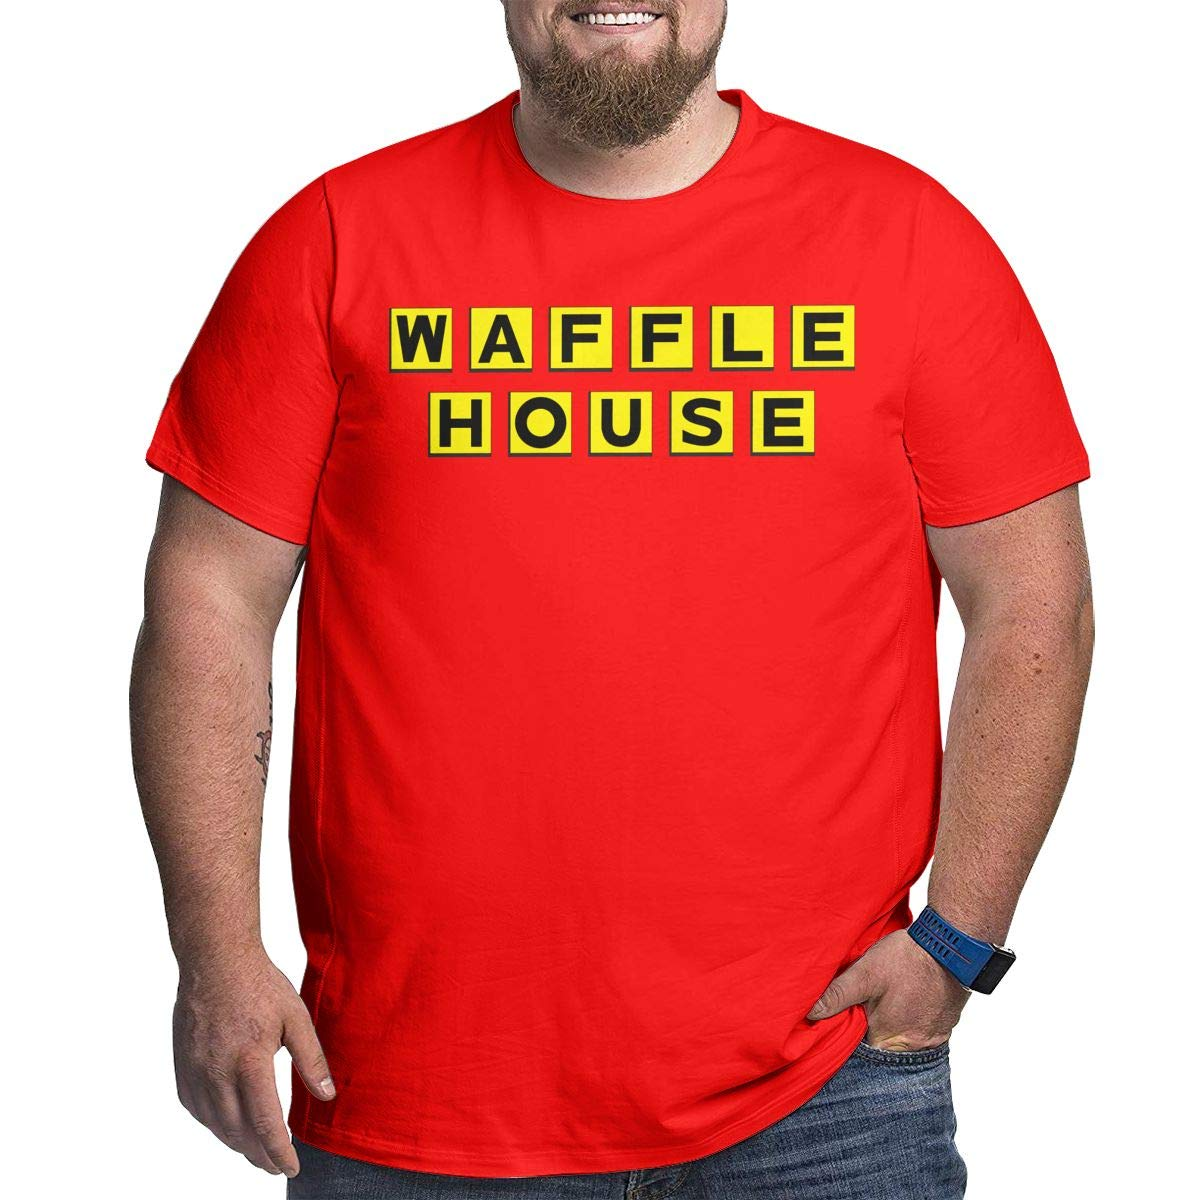 Fat Men's T Shirt Waffle House Logo Tee Shirts T-Shirt Short-Sleeve Round Neck Tshirt for Men Youth Boys Plus Size Red 6XL by BKashy